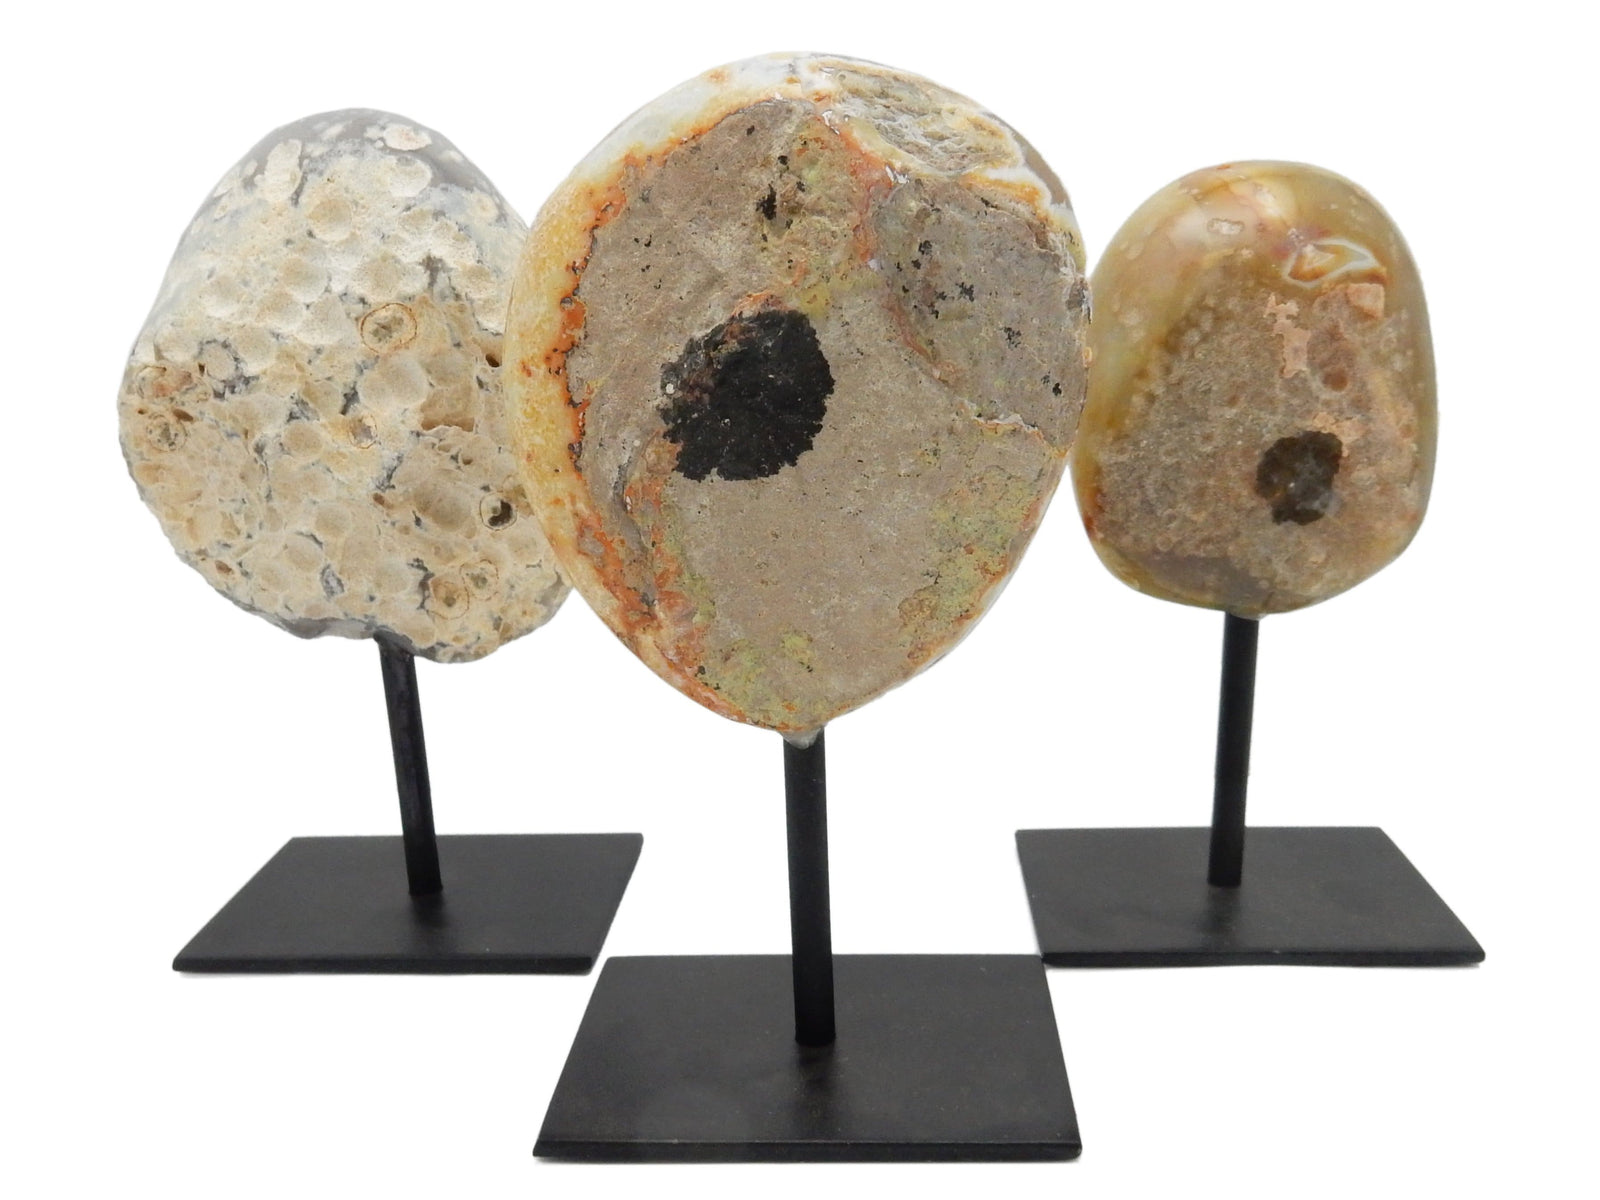 Bases & Stands - Agate Druzy Geode Metal Base Small Druzy Rock Formation - Natural Color - Home Decor - Gift - Spirituality